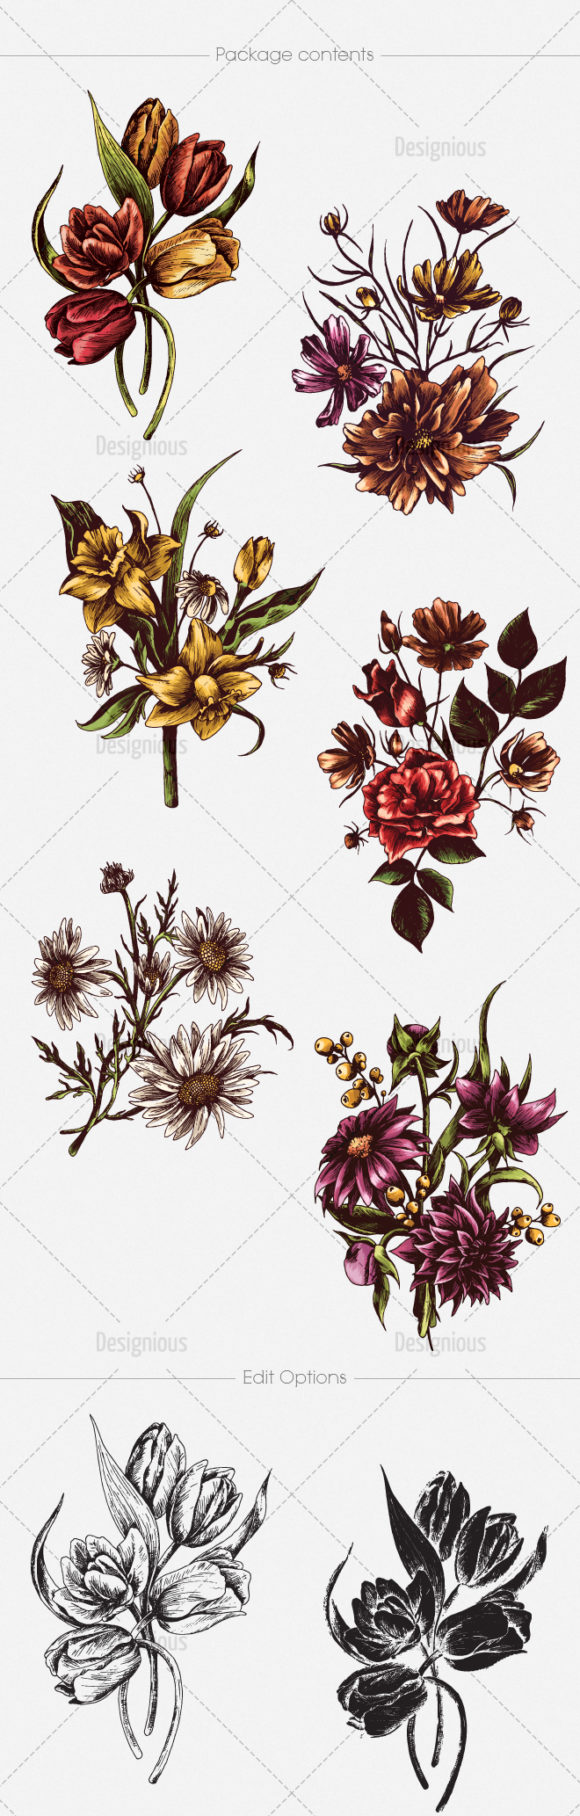 Floral Vector Pack 134 products designious vector floral 134 large